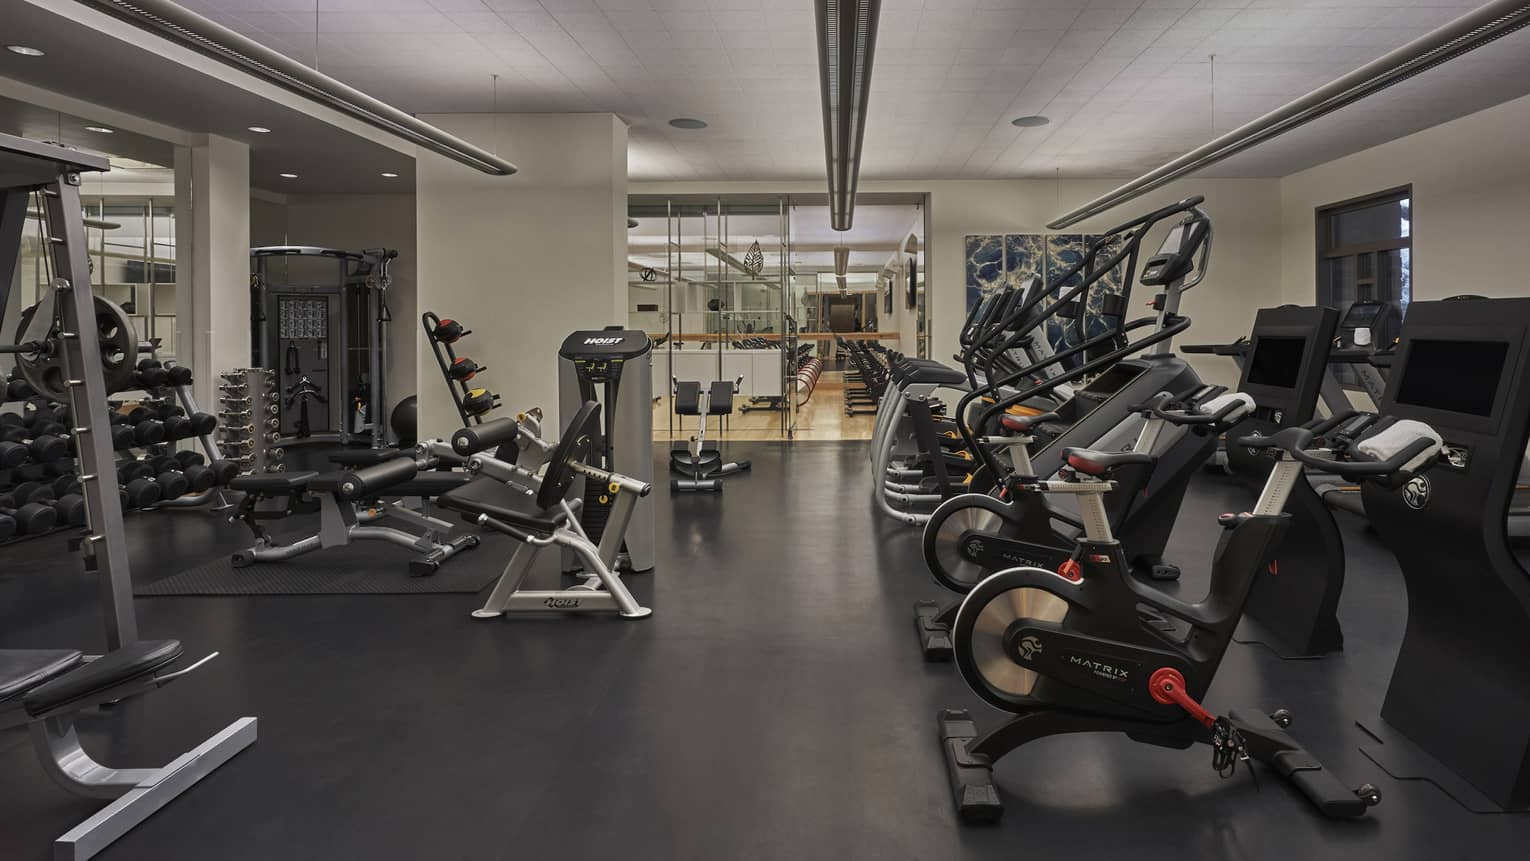 Indoor gym, white walls, black floors, various weight-training and cardio machines